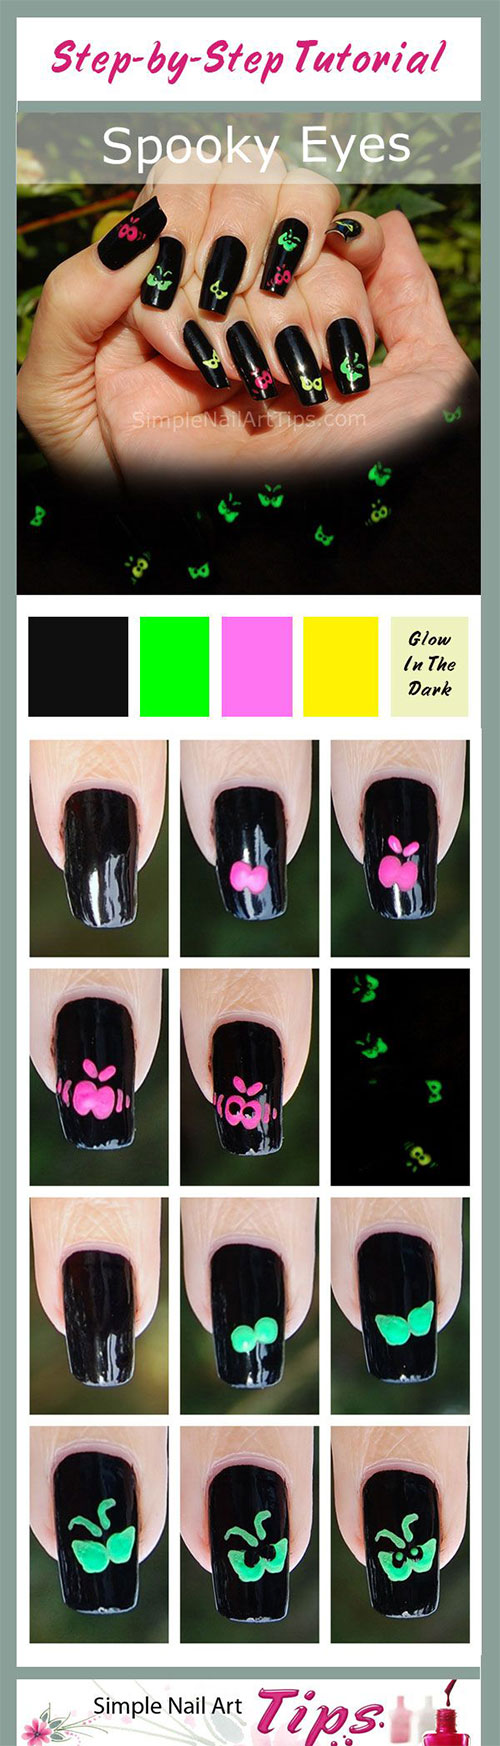 15-Scary-Halloween-Nail-Art-Tutorials-For-Beginners-Learners-2014-10